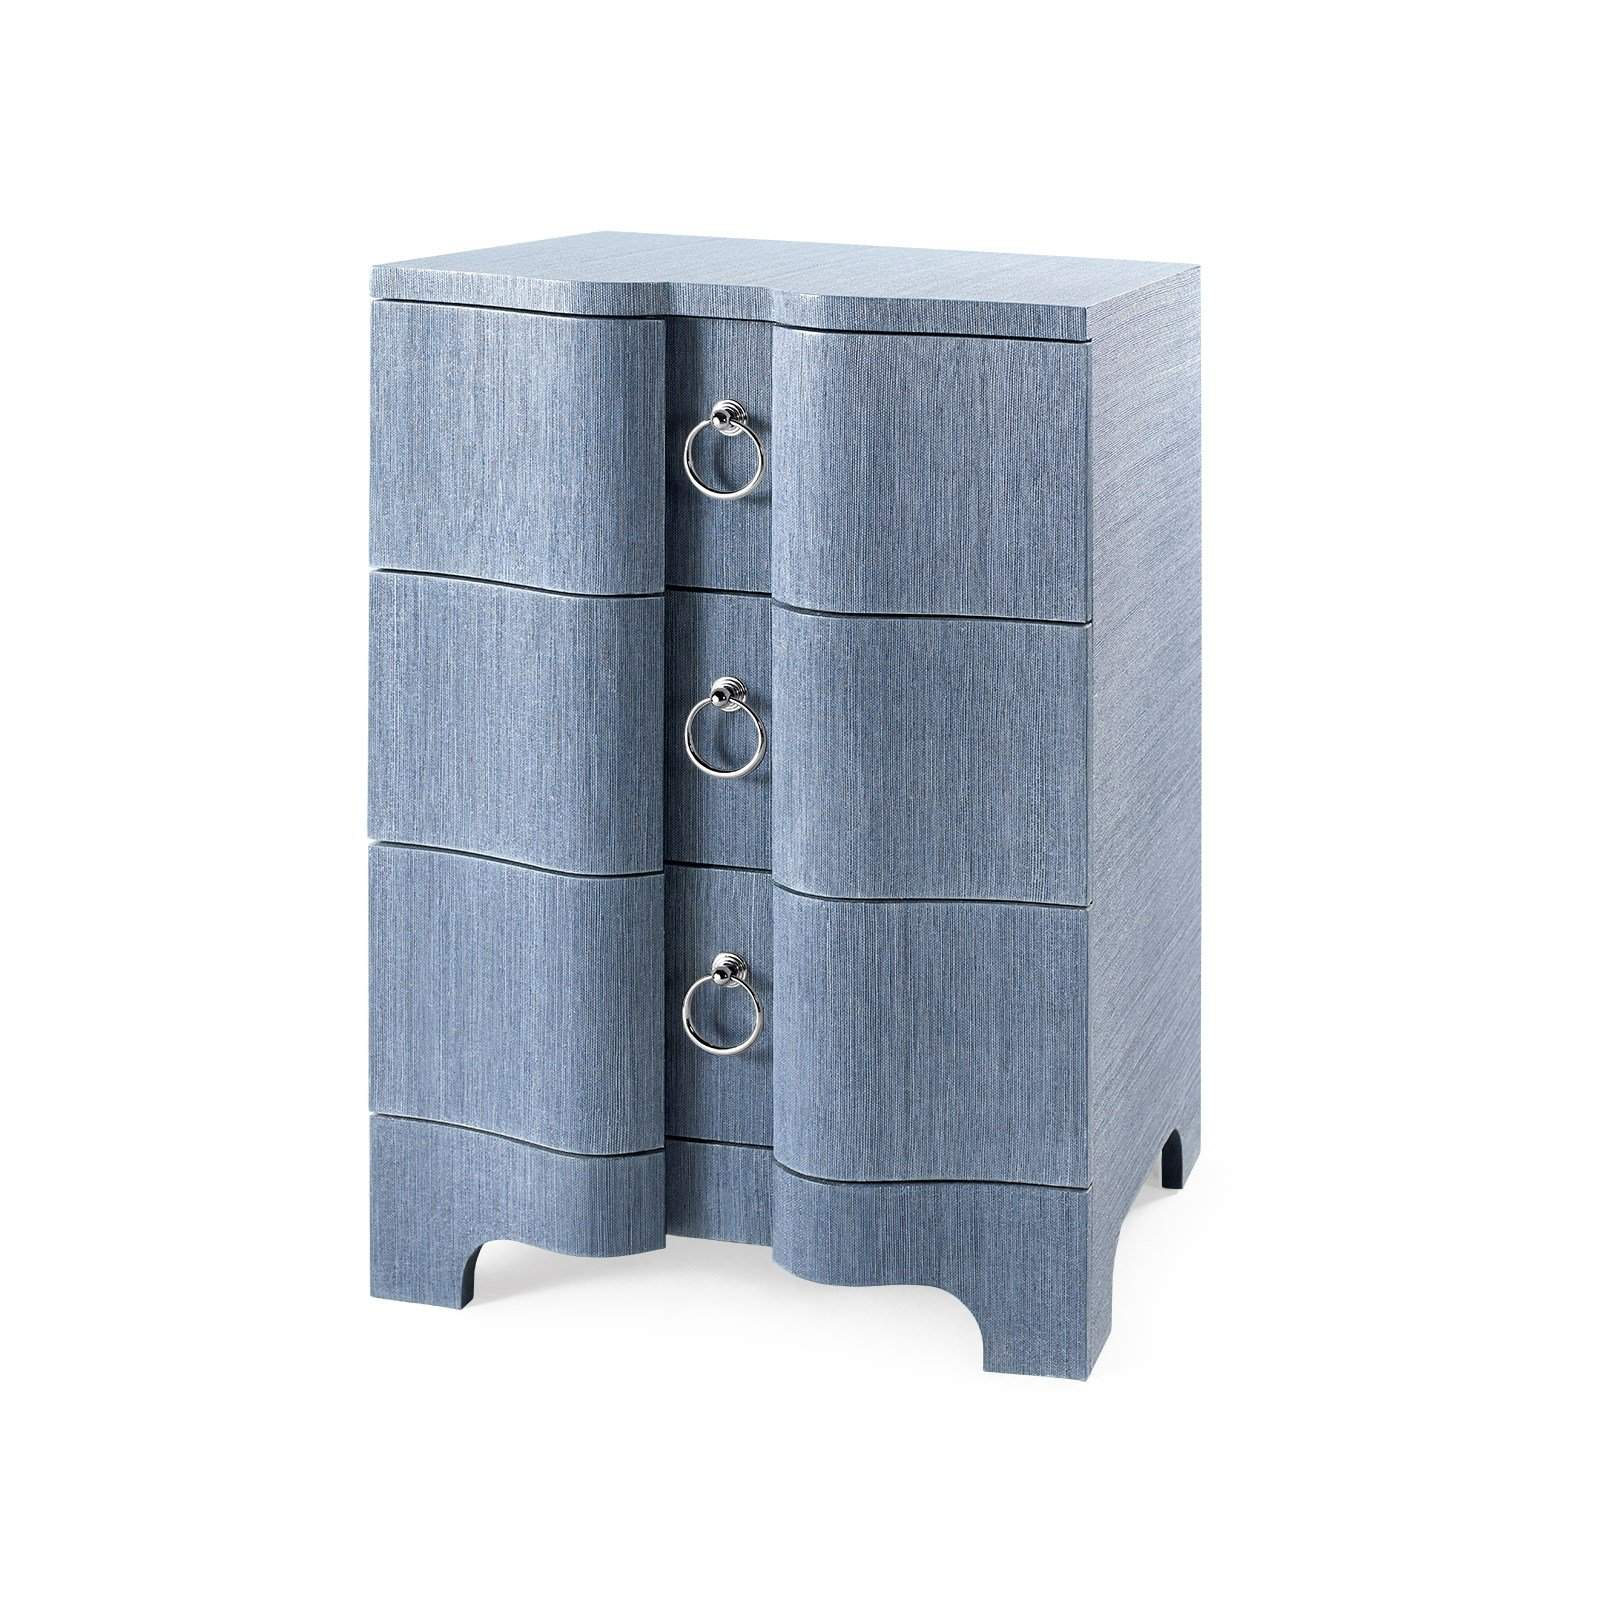 Bungalow 5 - BARDOT 3-DRAWER SIDE TABLE in NAVY BLUE